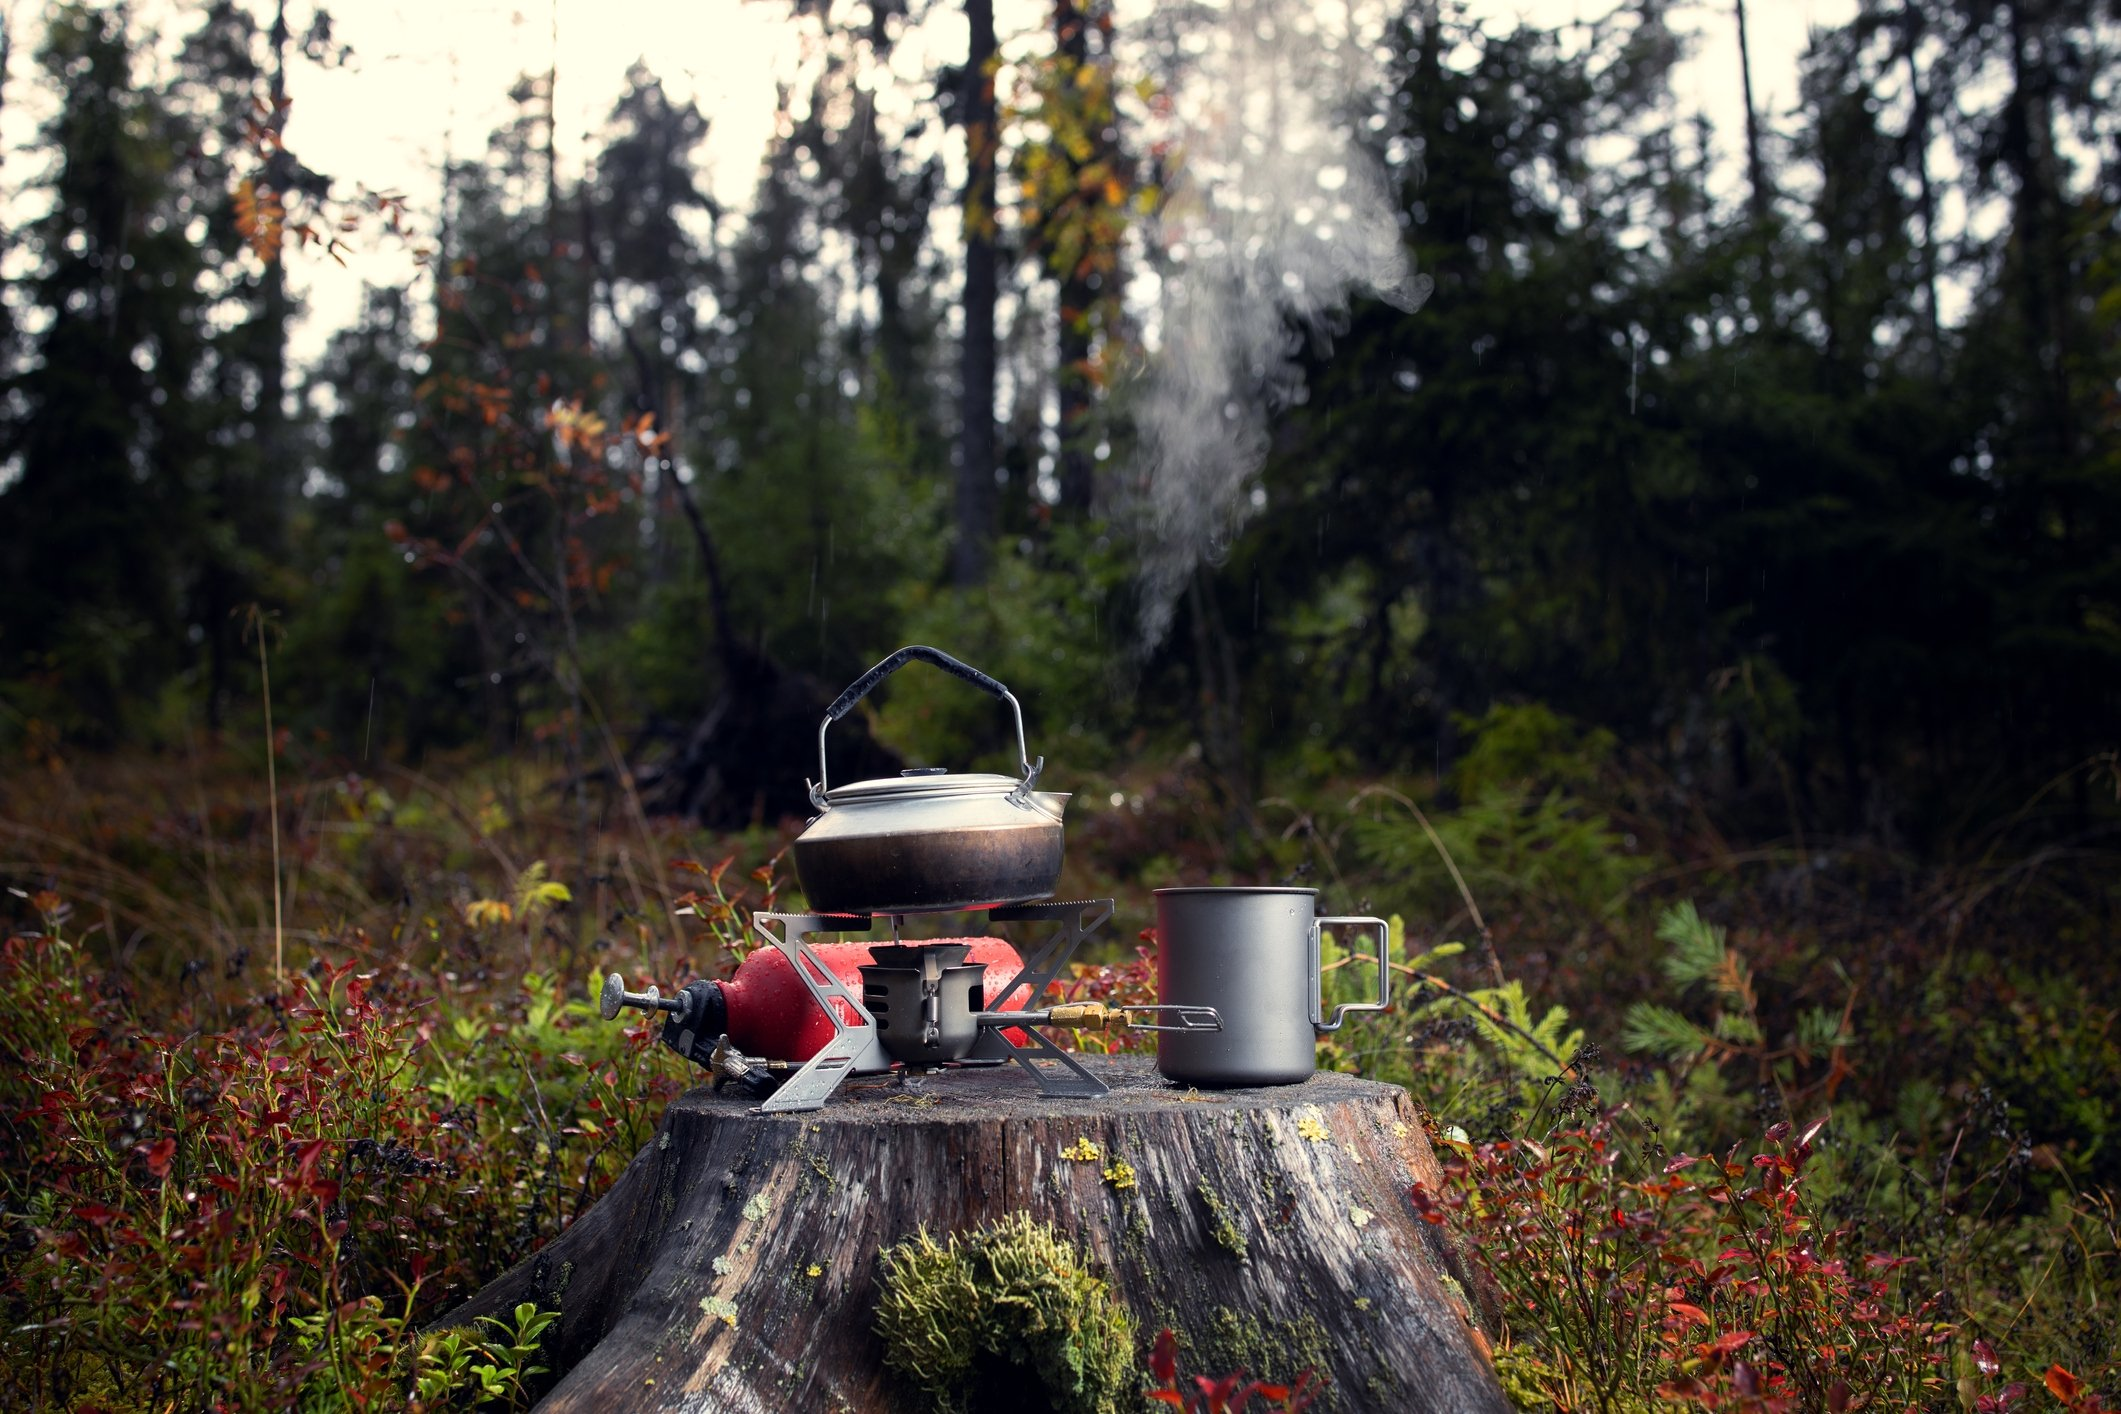 Make sure you bring a camp stove and some utensils to cook on your first long camping trip. (iStock Photo)